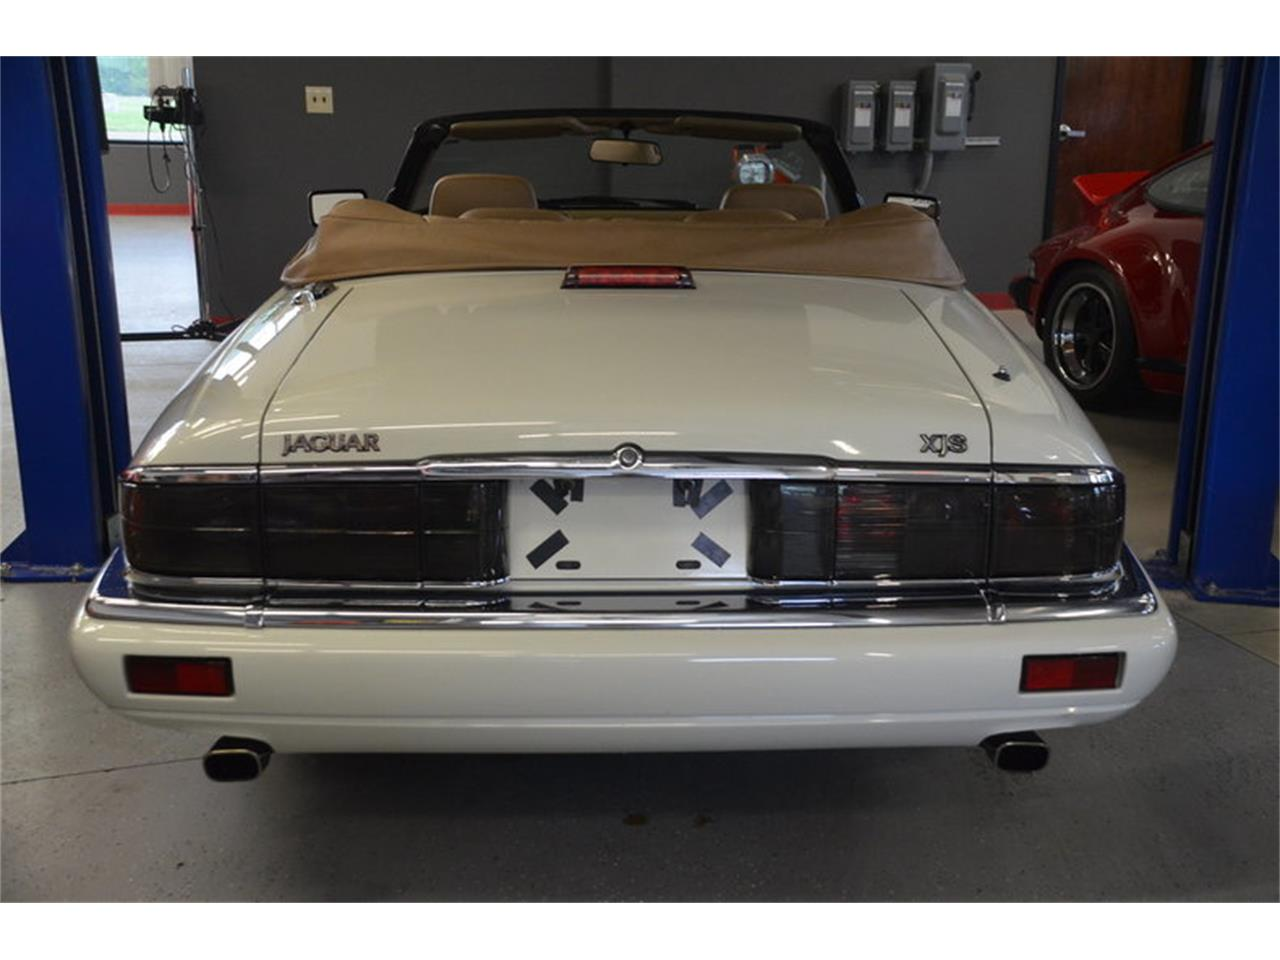 Large Picture of 1994 Jaguar XJS located in Lebanon Tennessee - $16,500.00 - NRL8